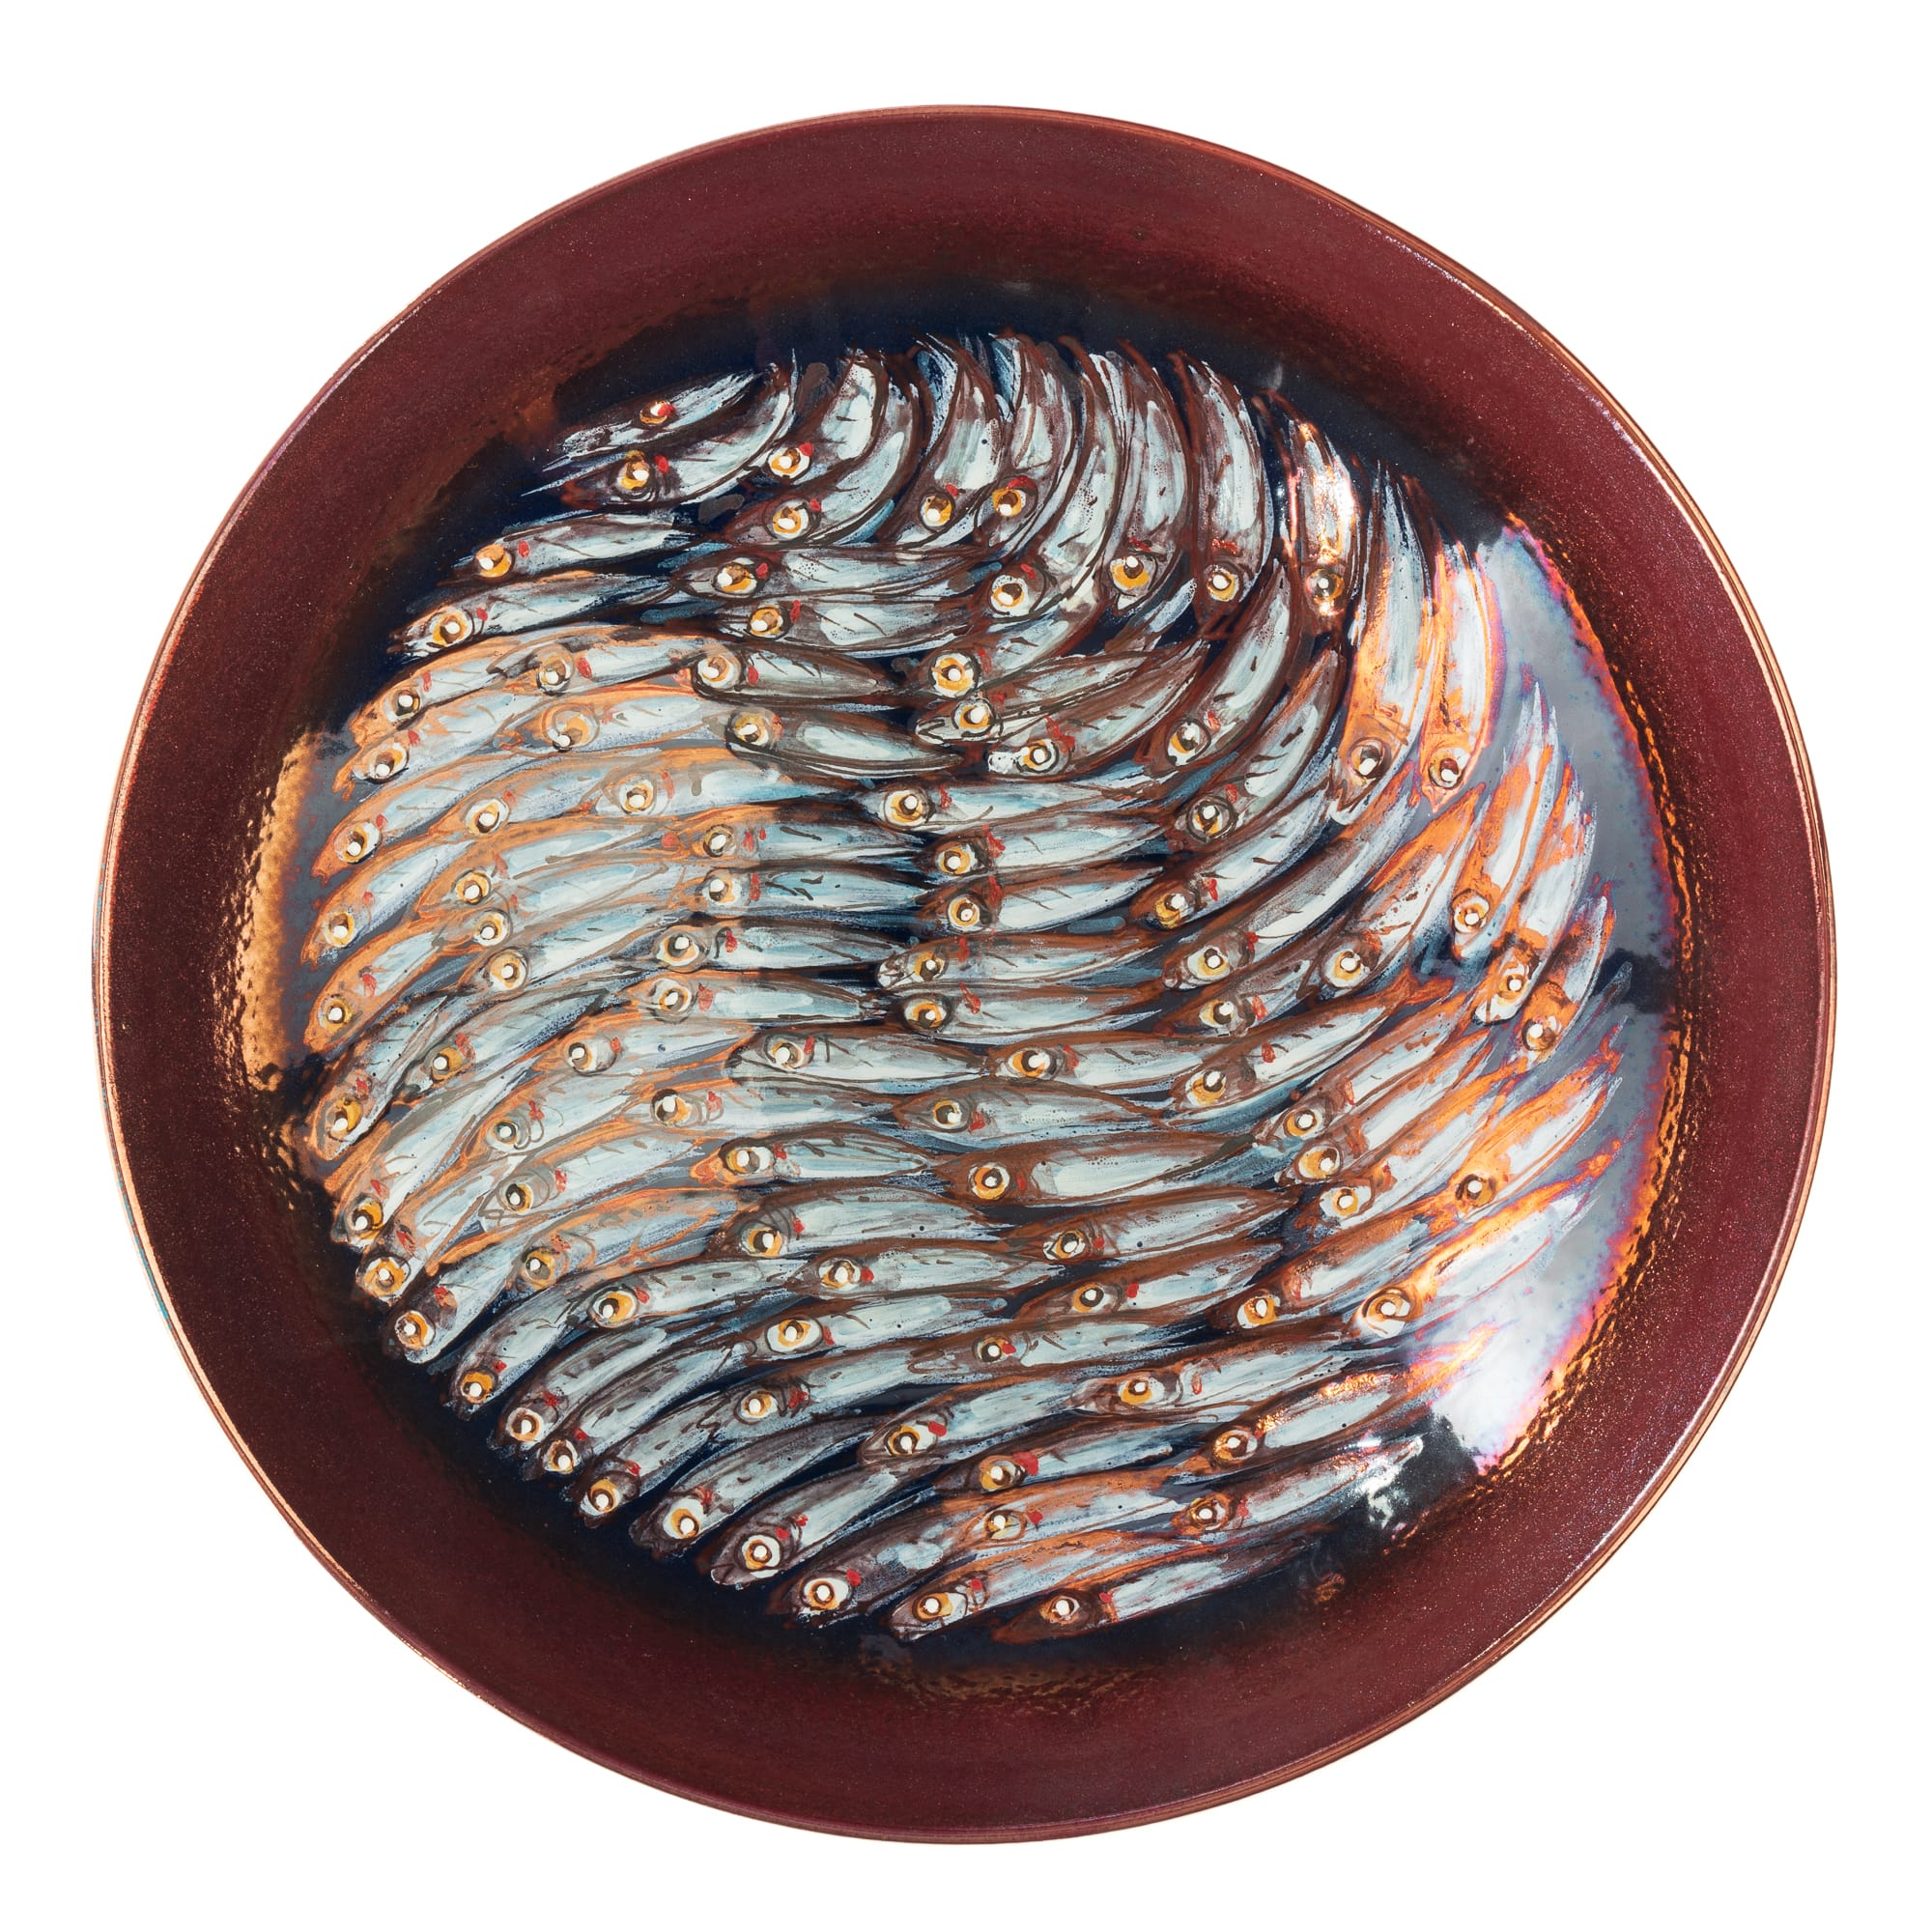 "Vignoli 13"" Anchovies in Alignment with Copper Ring Centerpiece"